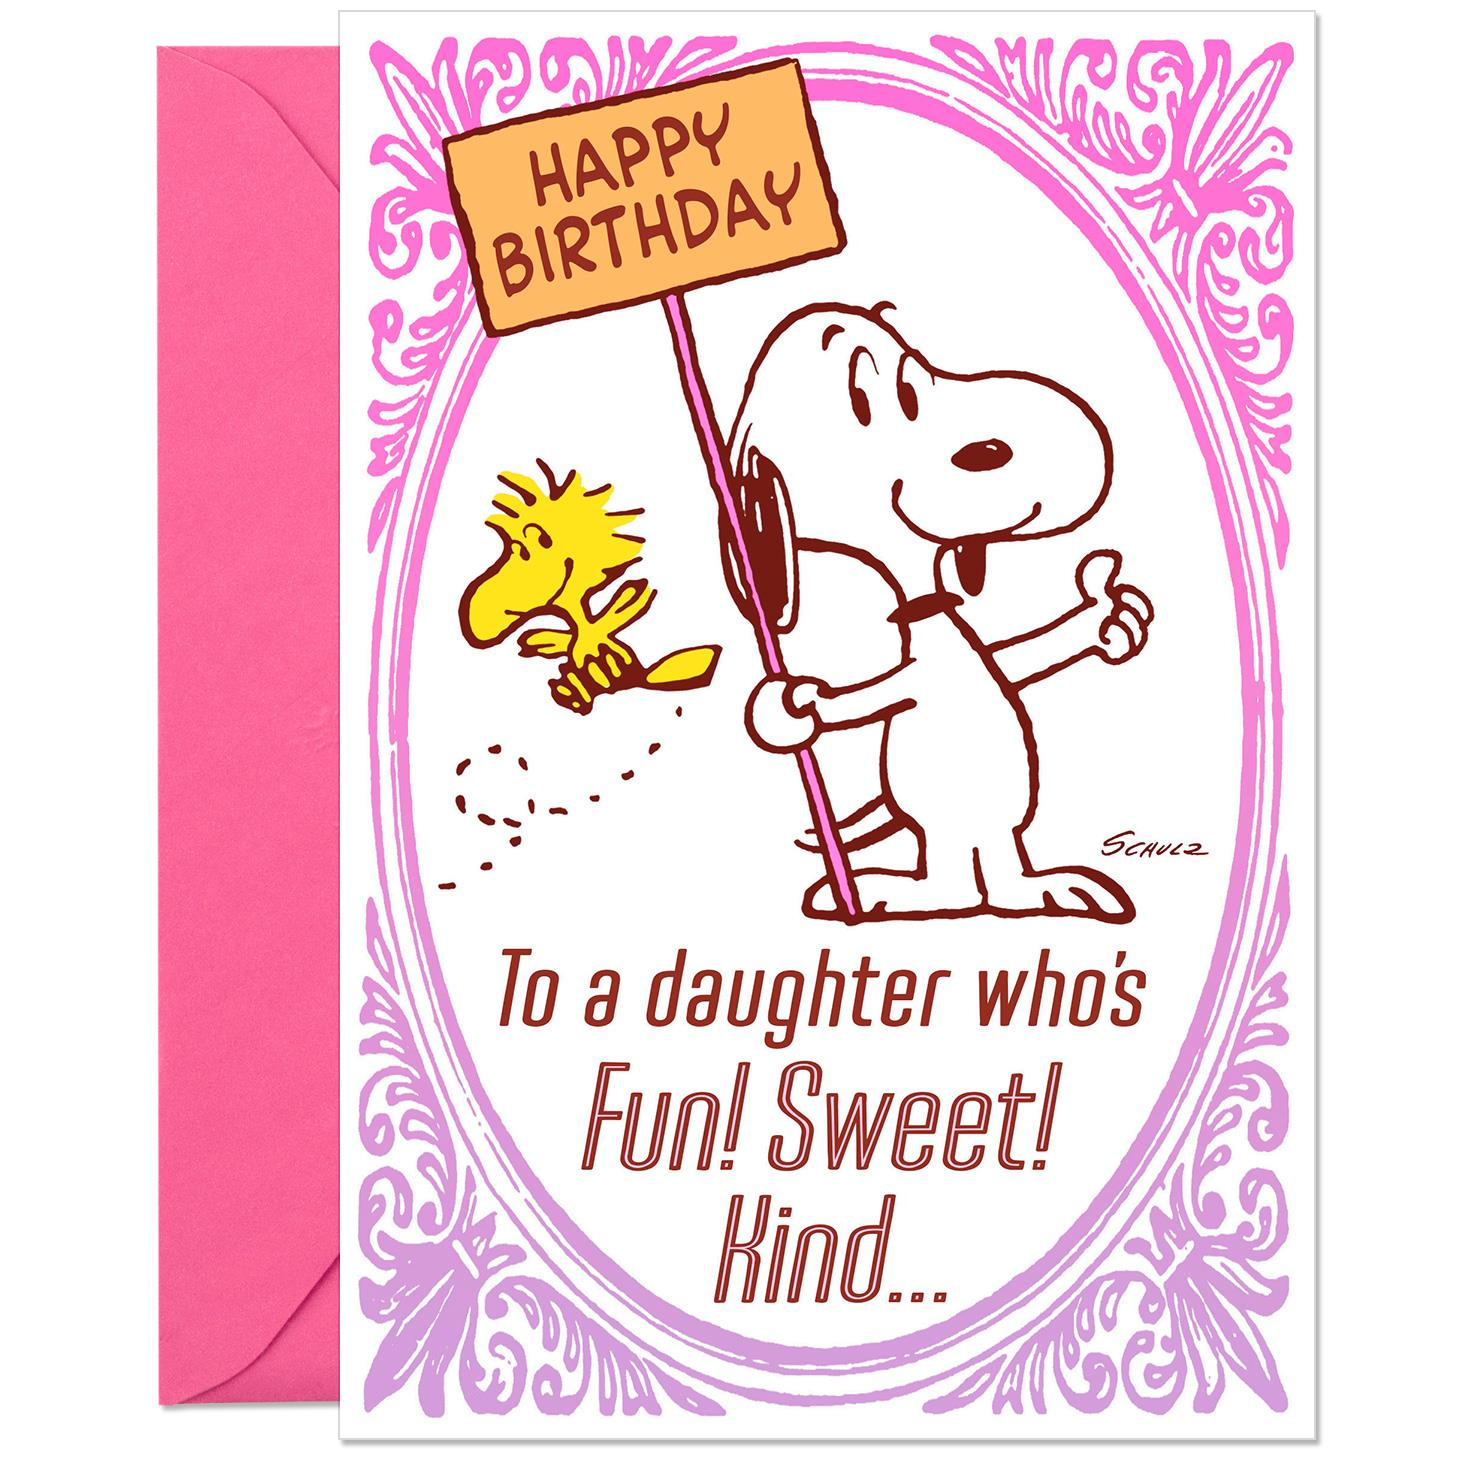 Peanuts 174 Snoopy And Woodstock Sweet Daughter Funny